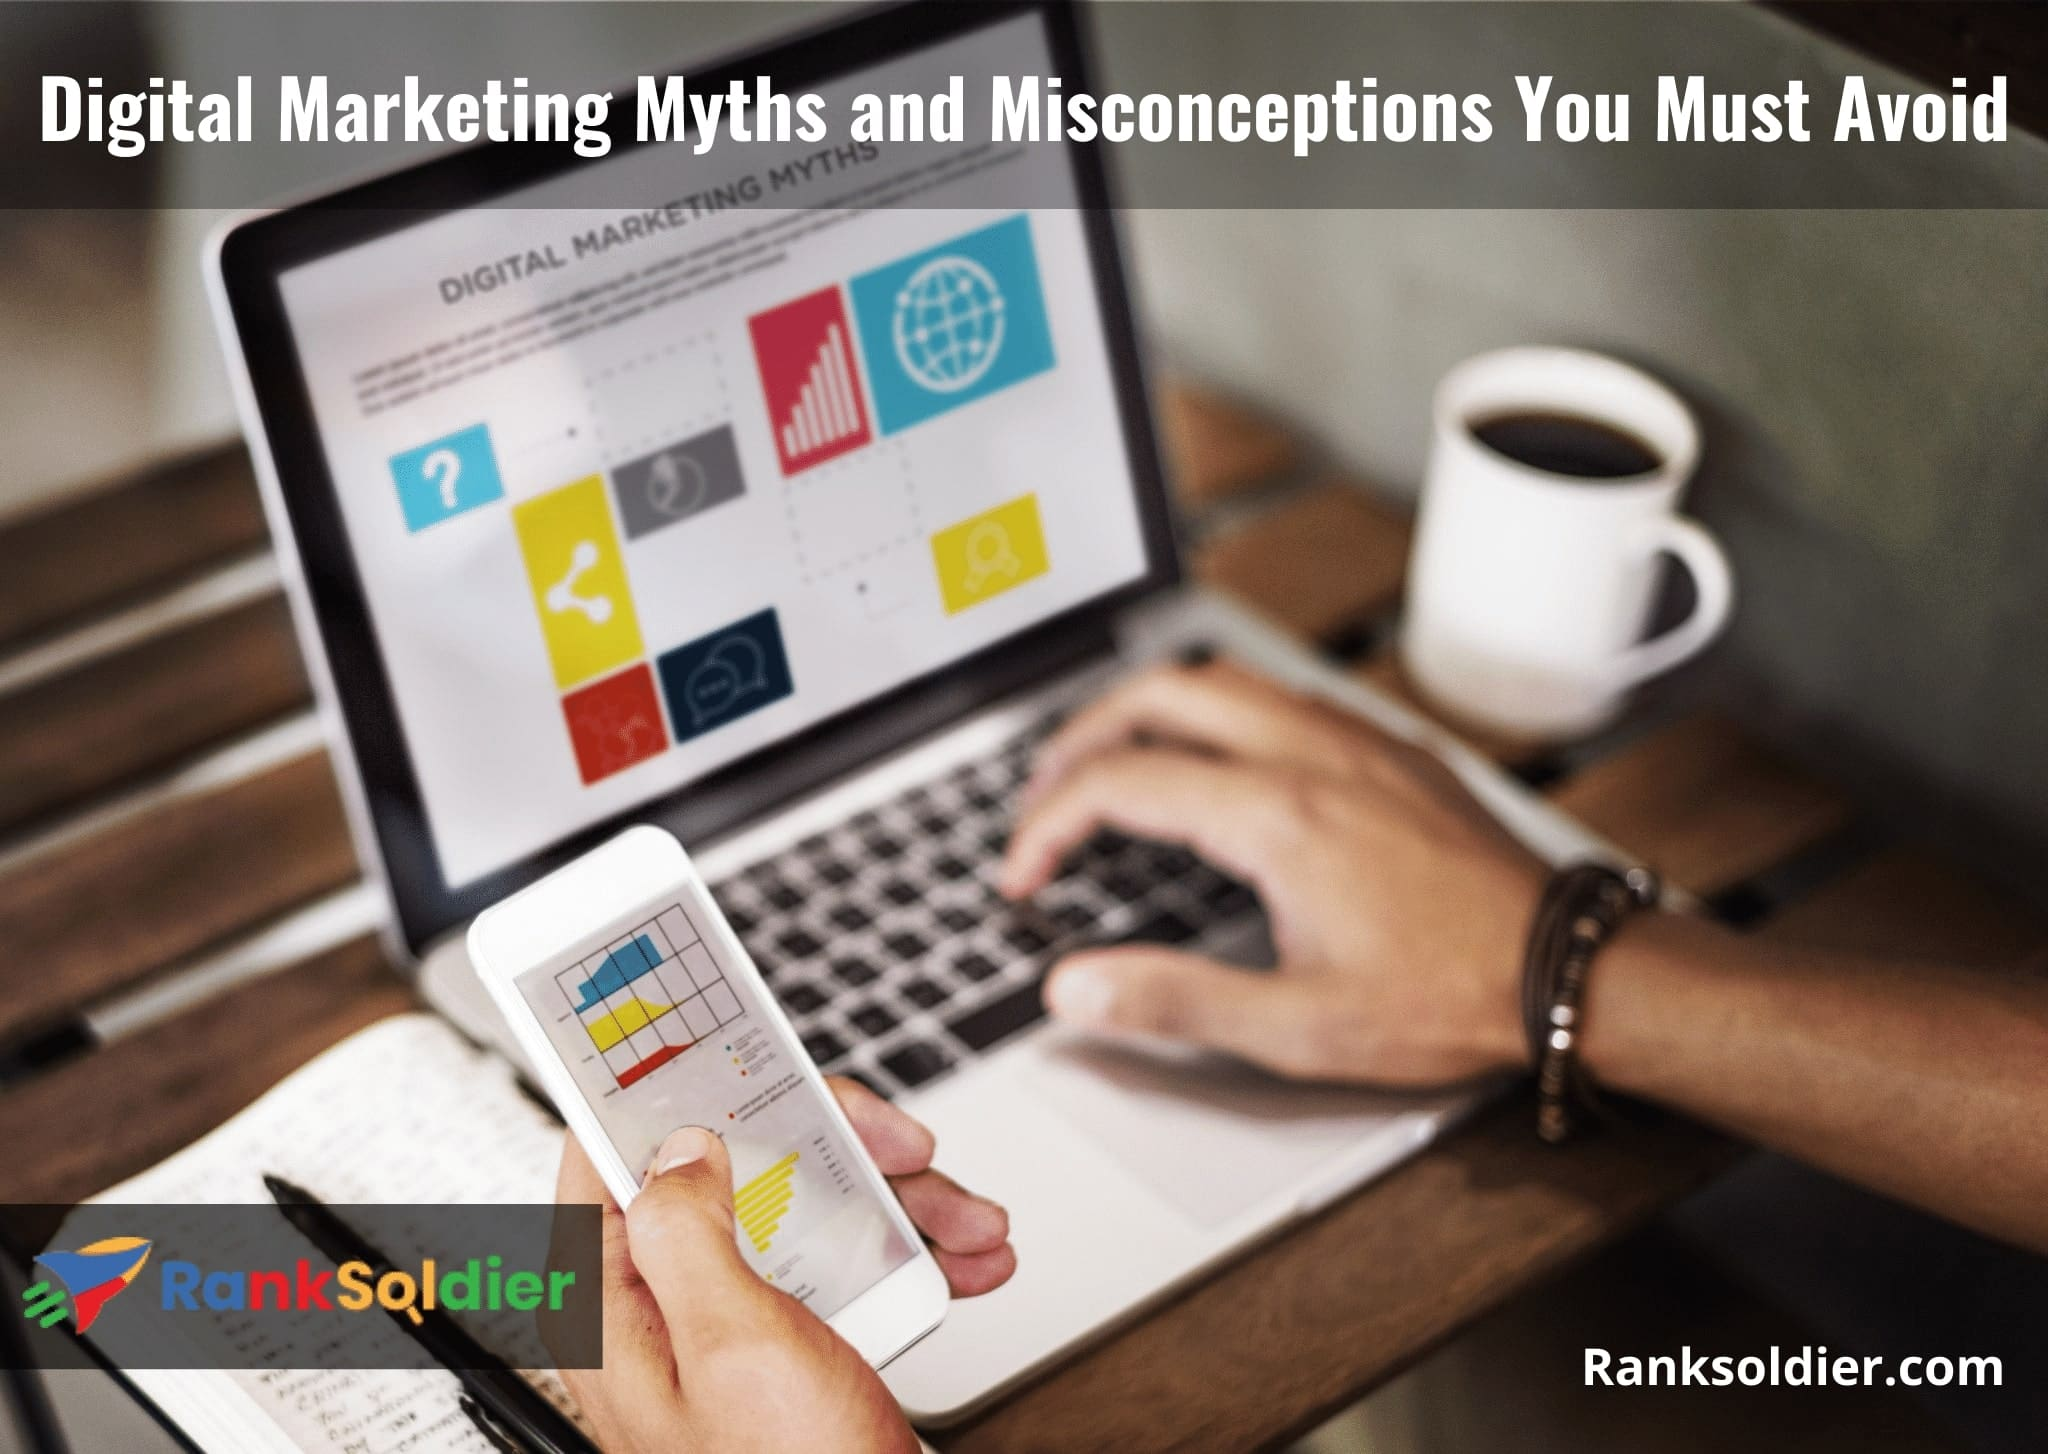 Digital Marketing Myths and Misconceptions You Must Avoid